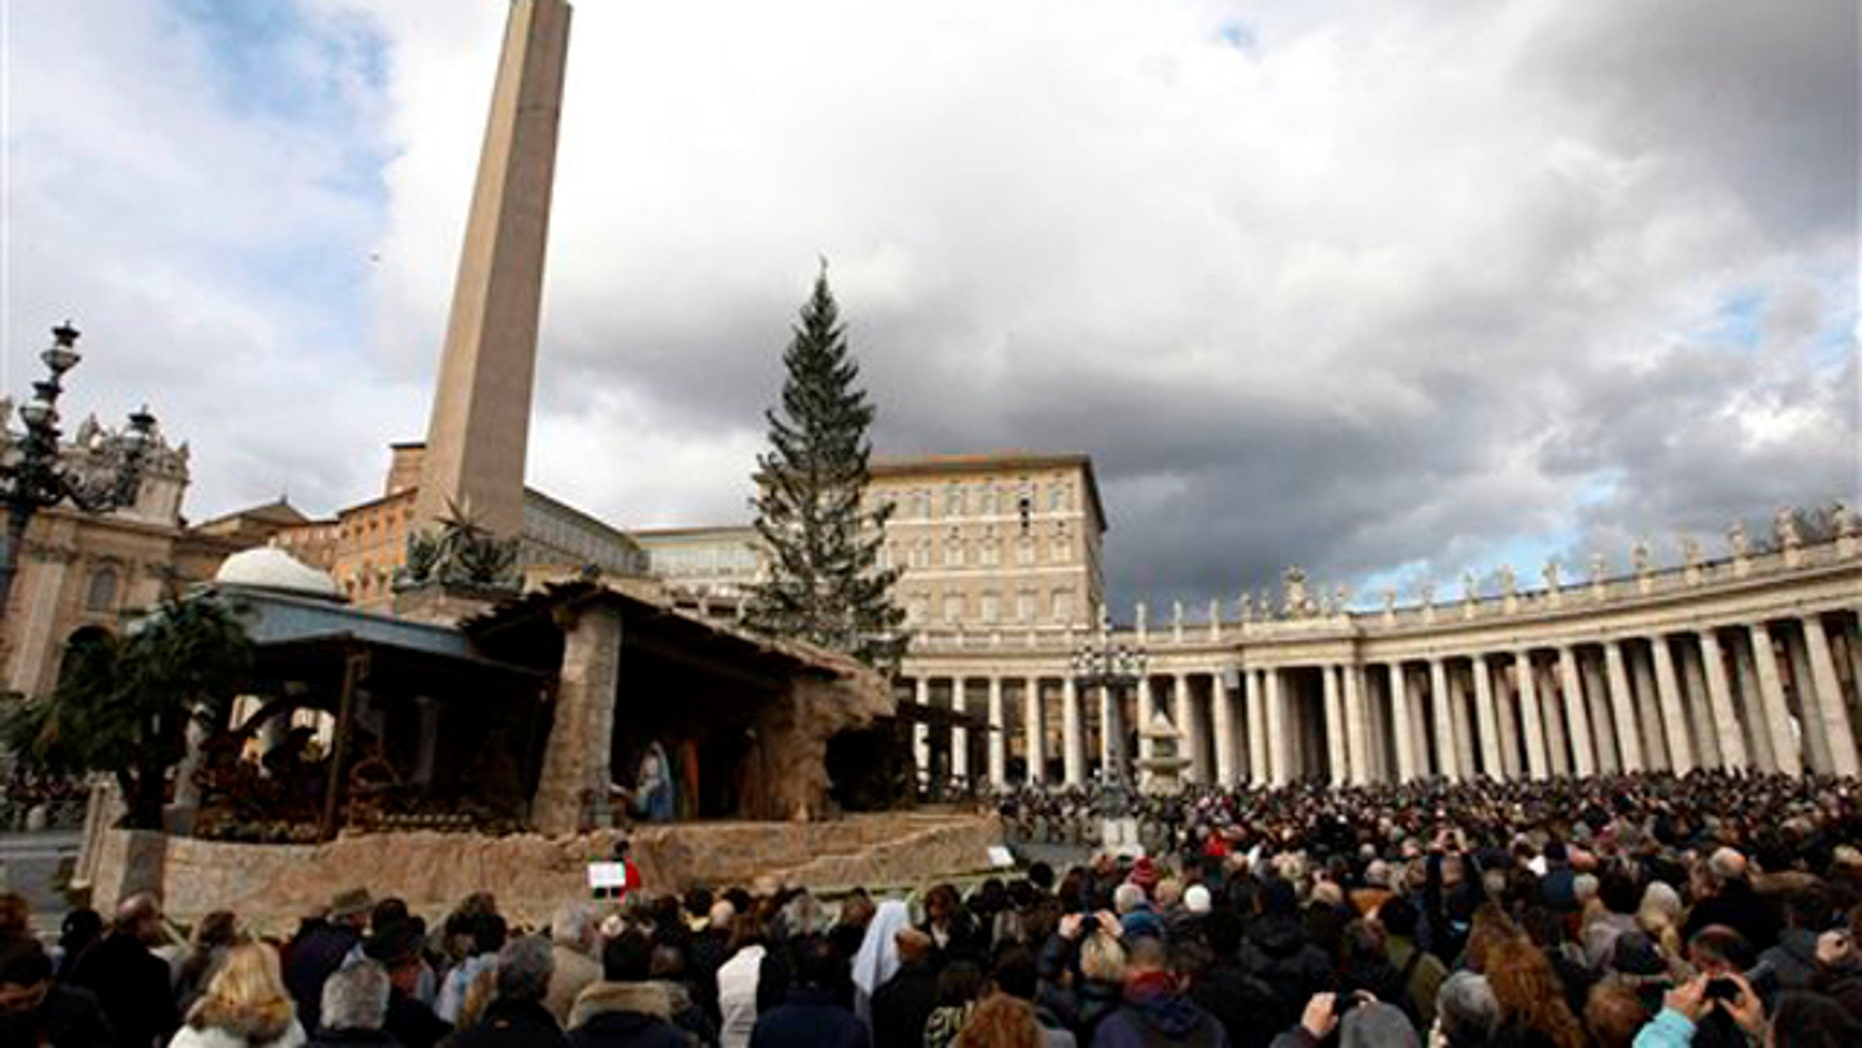 Dec. 26, 2010: People gather in St. Peter's square at the Vatican as Pope Benedict XVI delivers his blessing during the Angelus noon prayer he celebrated from the window of his studio. The pontiff denounced Christmas attacks on the faithful in the Philippines and Nigeria and called for the peaceful resolution of conflicts.